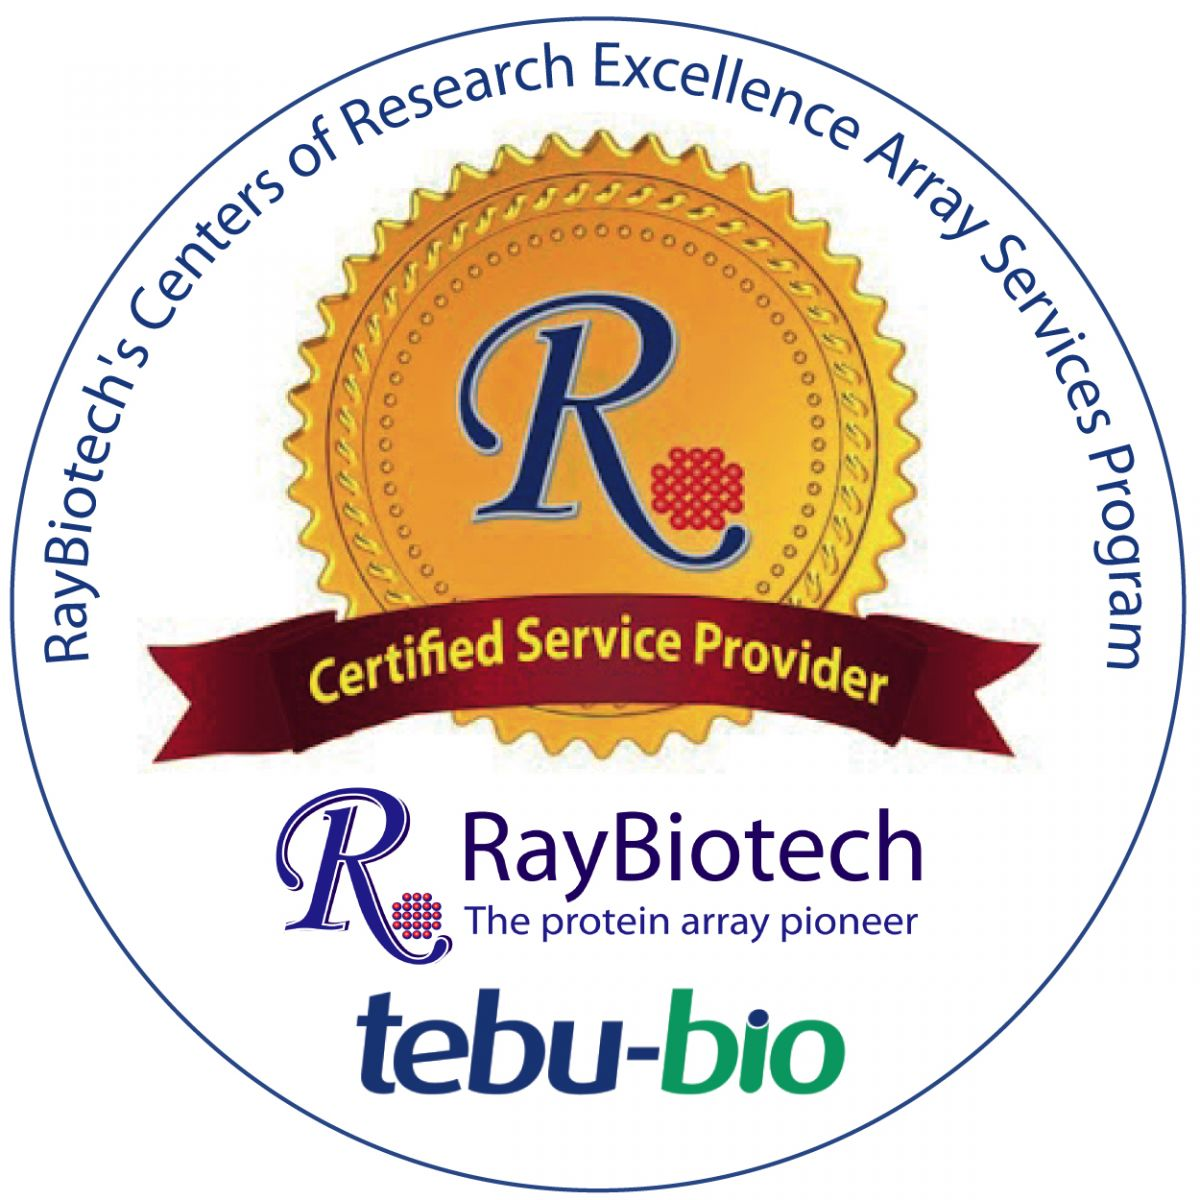 RayBiotech Certified Service Provider and Research Center of Excellence